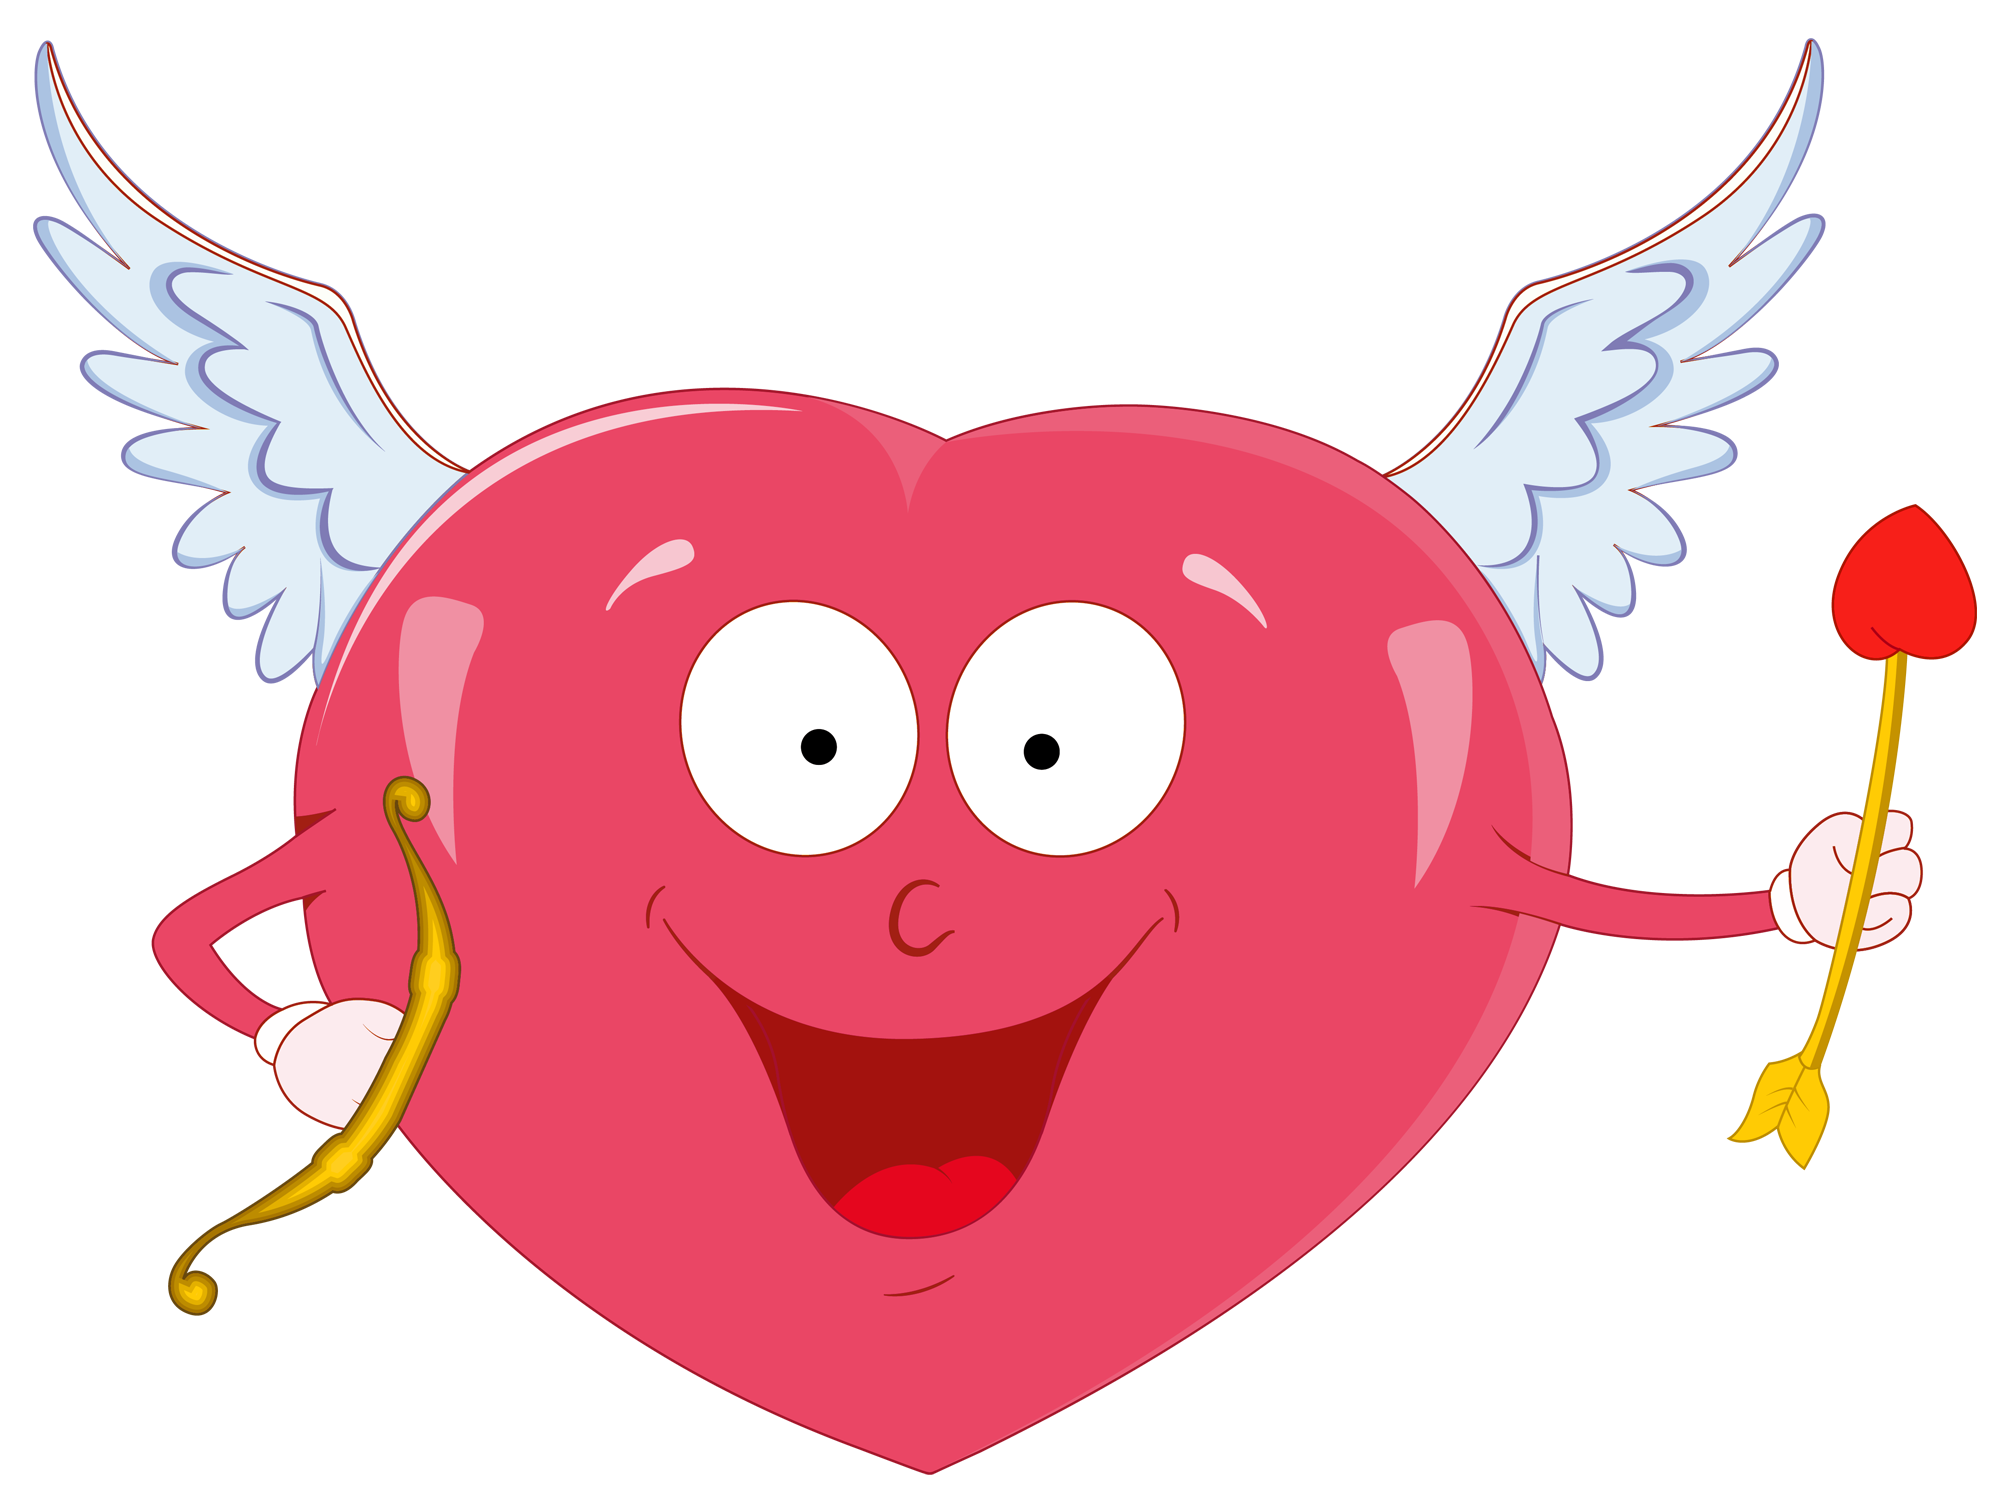 Valentines cupid png. Valentine heart with bow